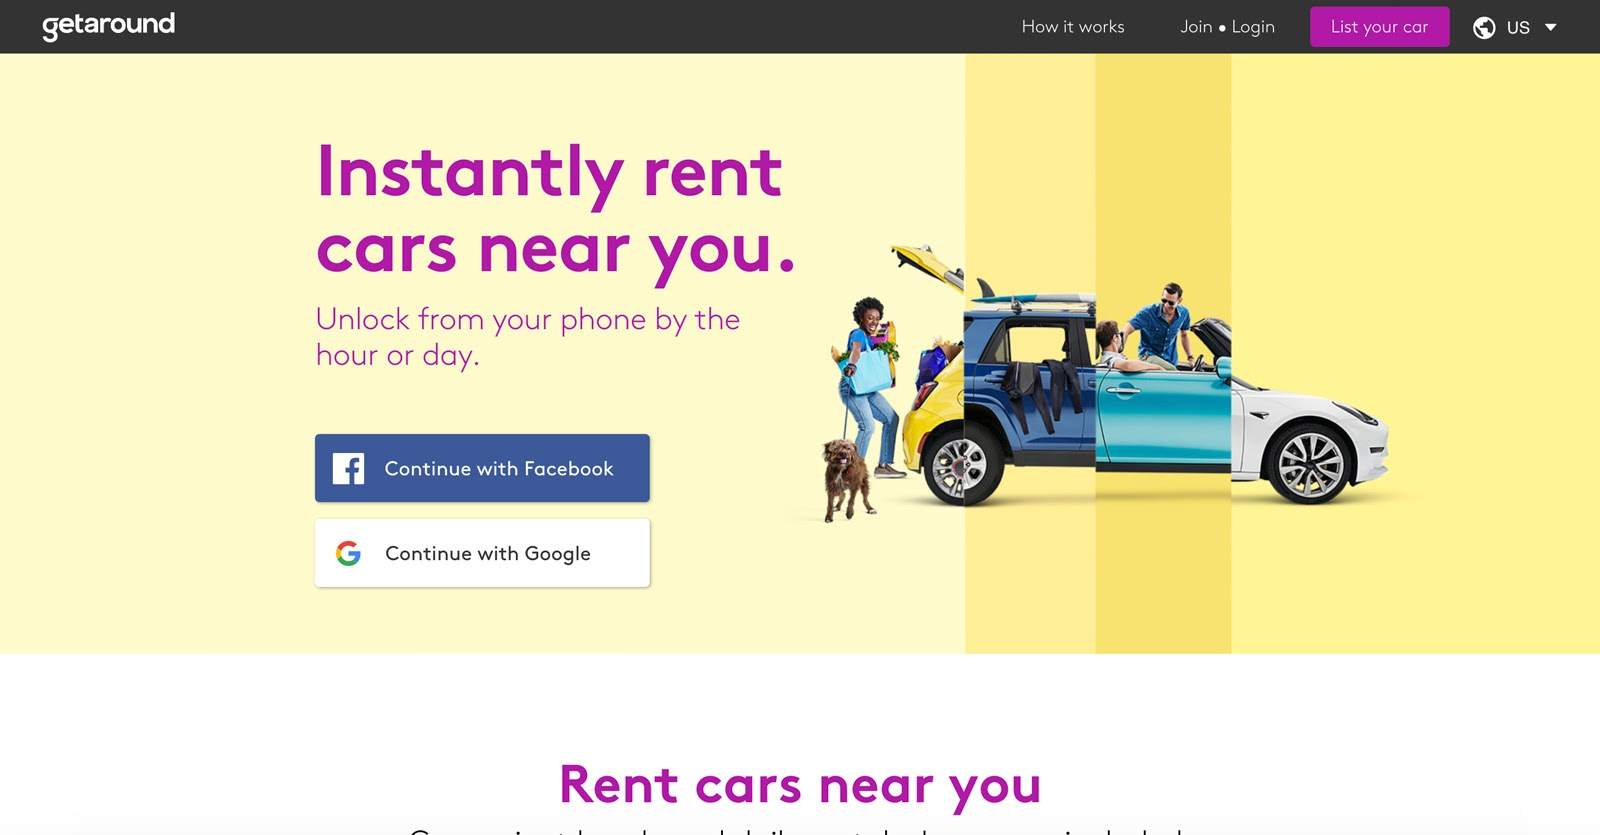 rent cars with getaround